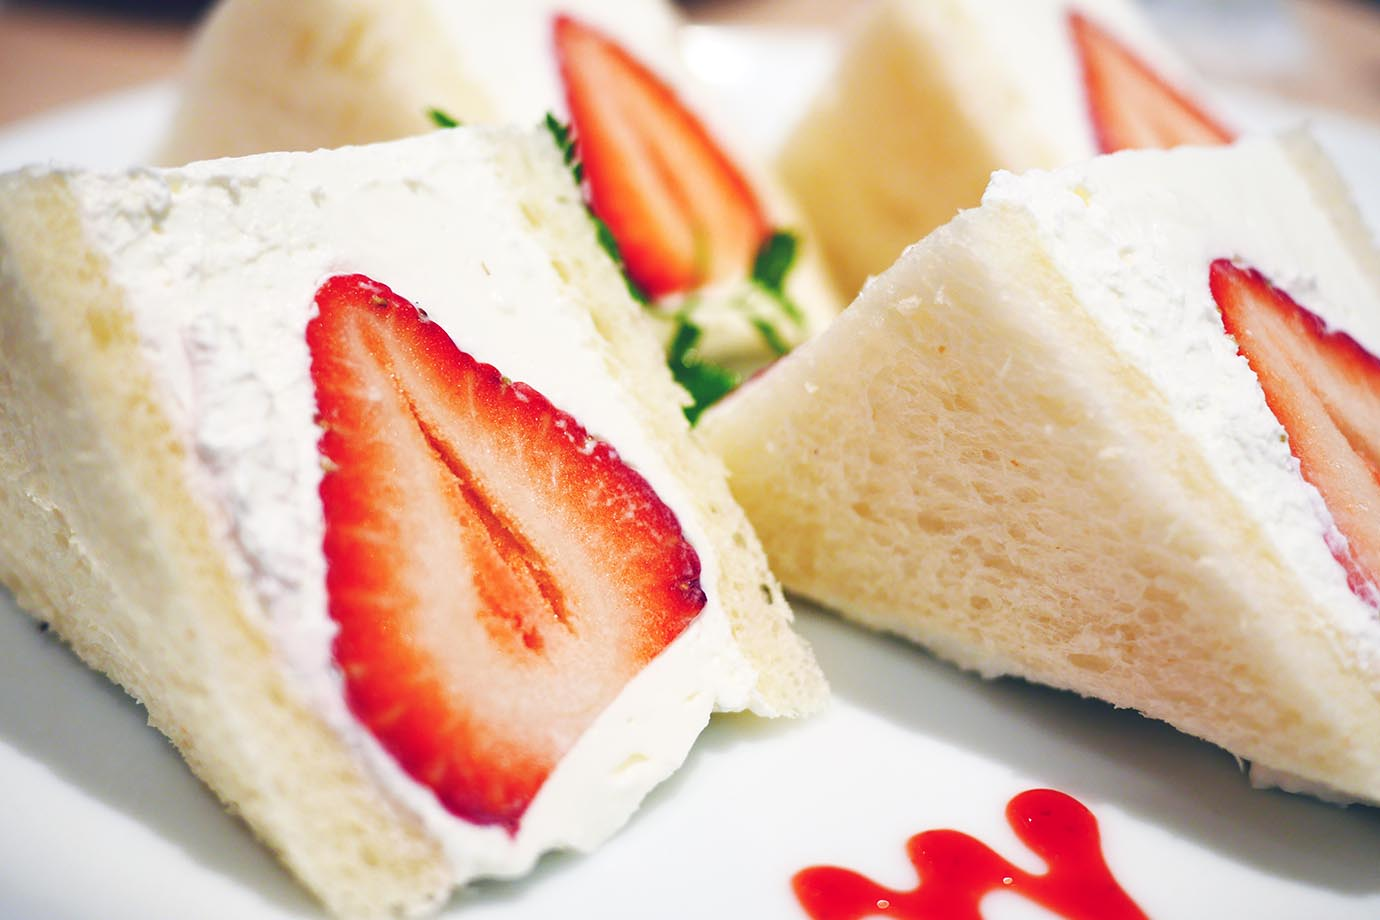 strawberry-sandwich1